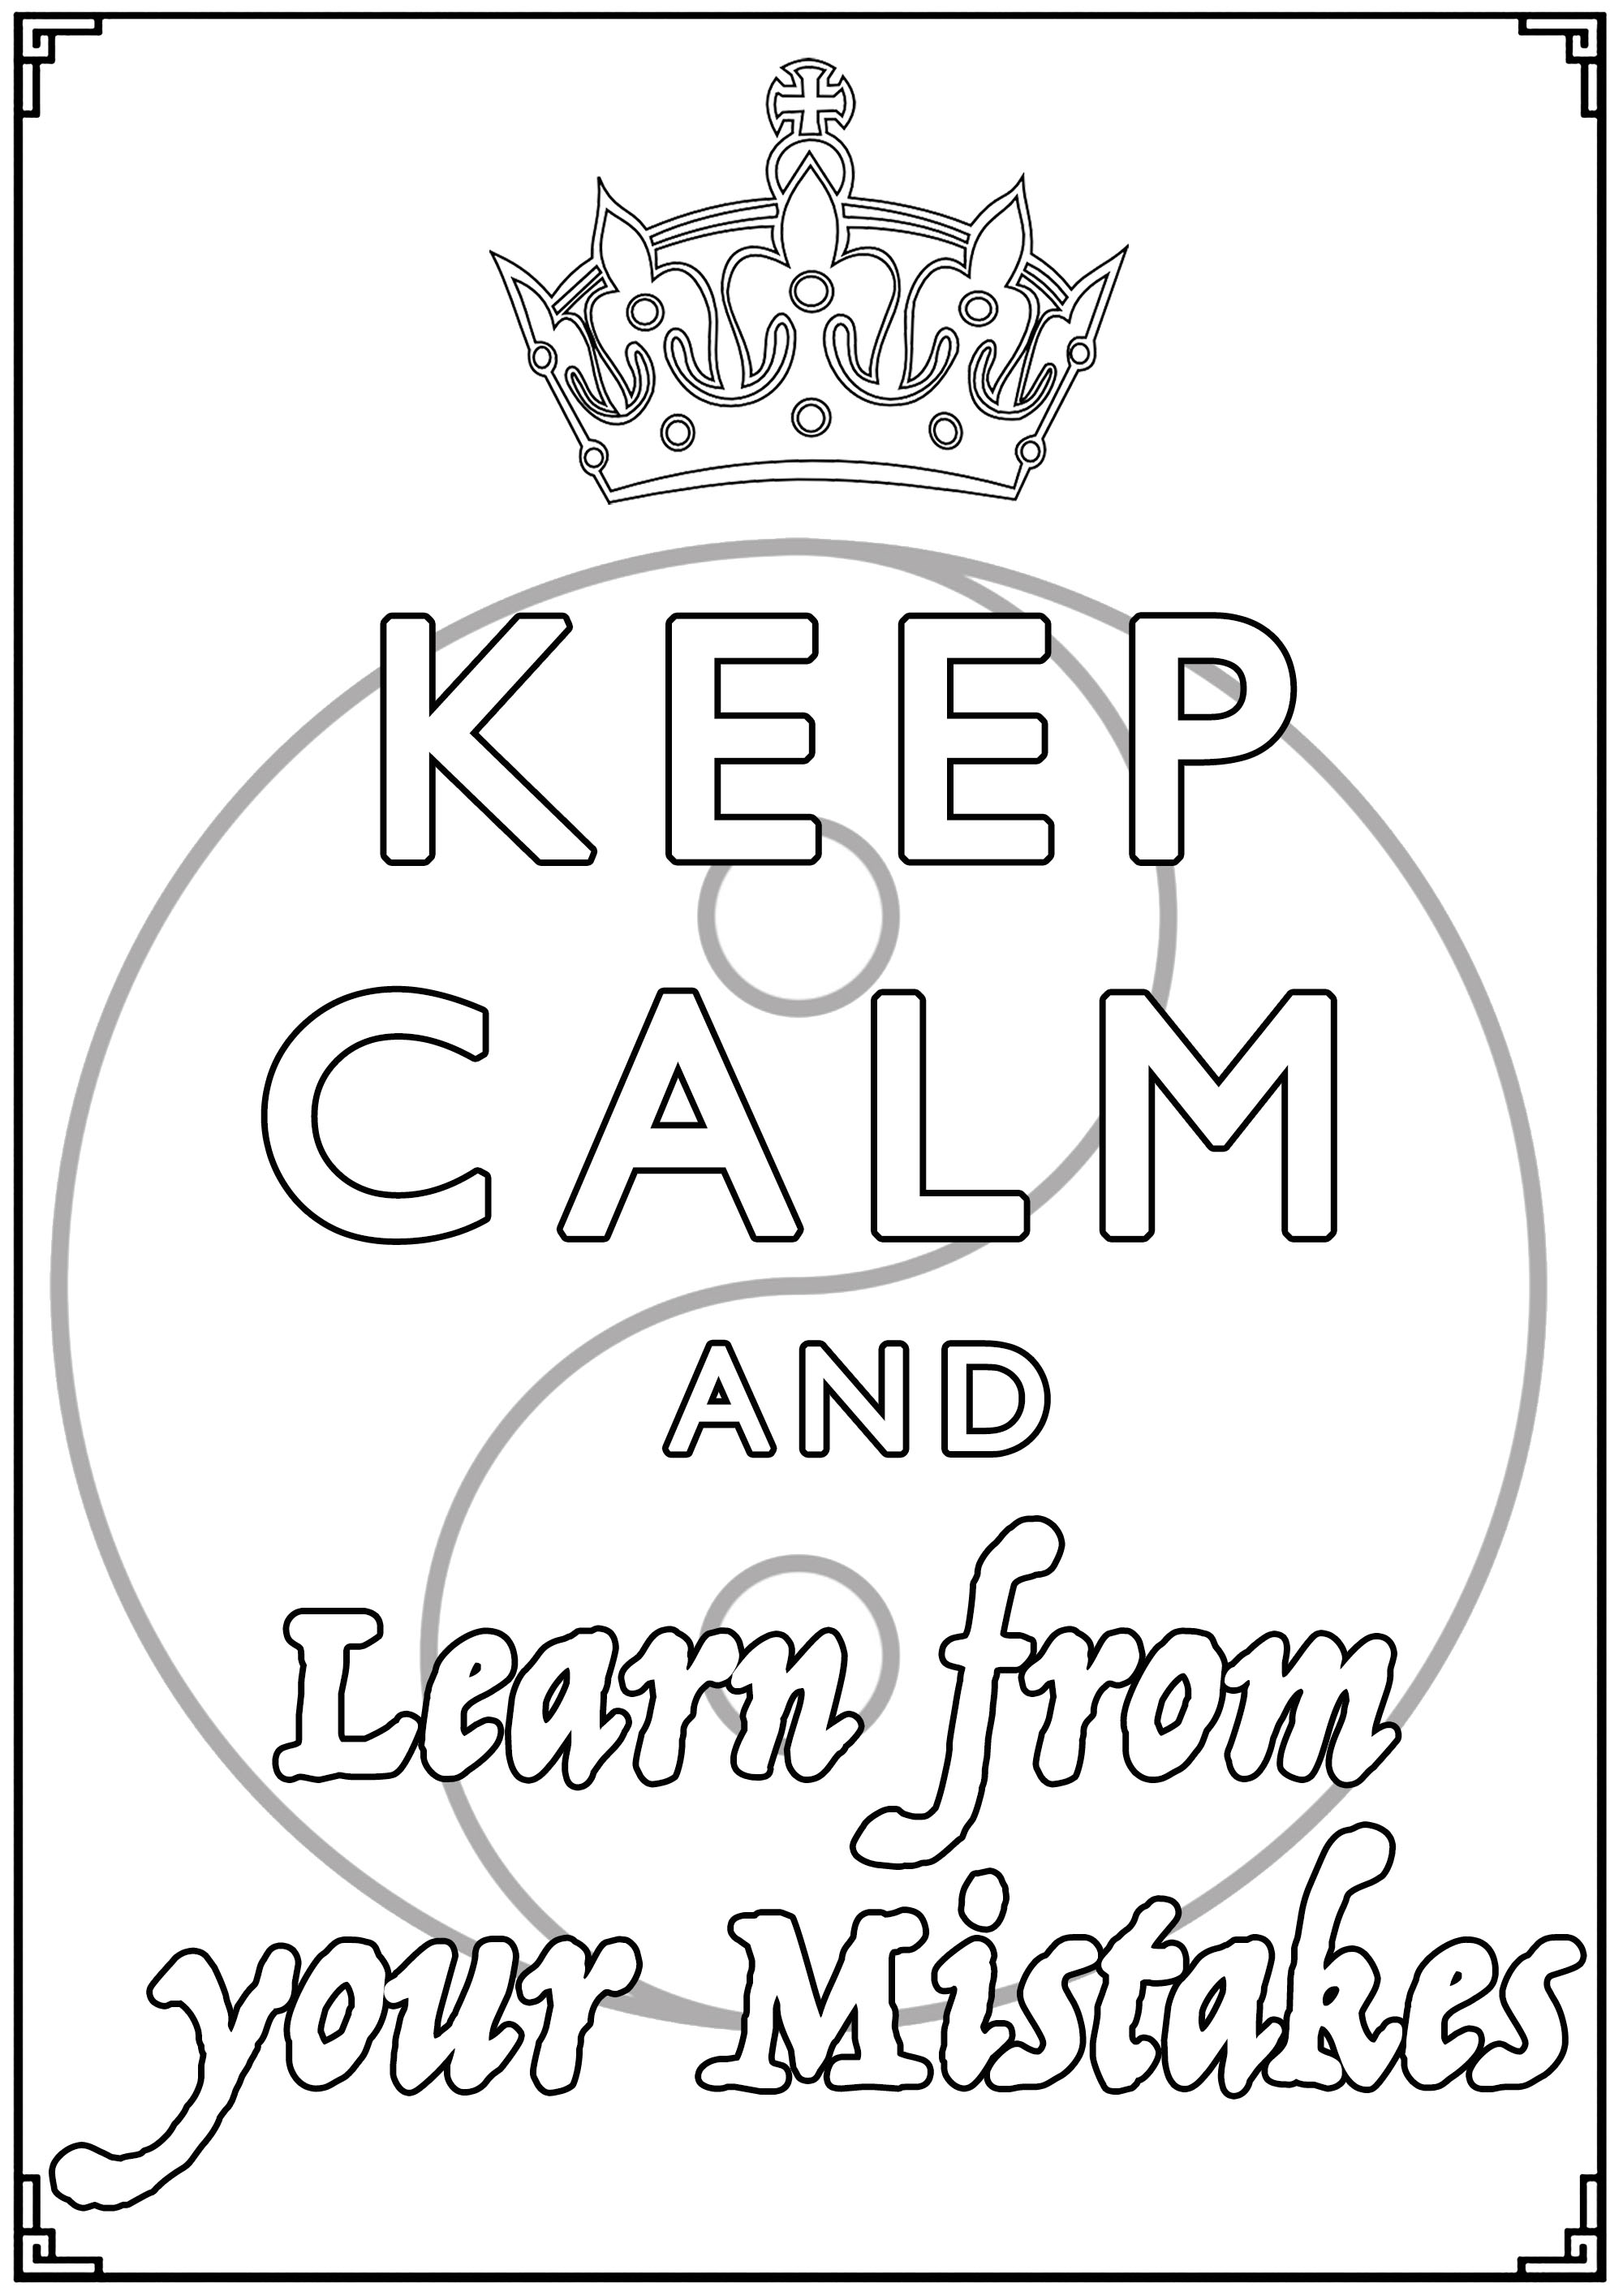 Keep calm and learn from your mistakes